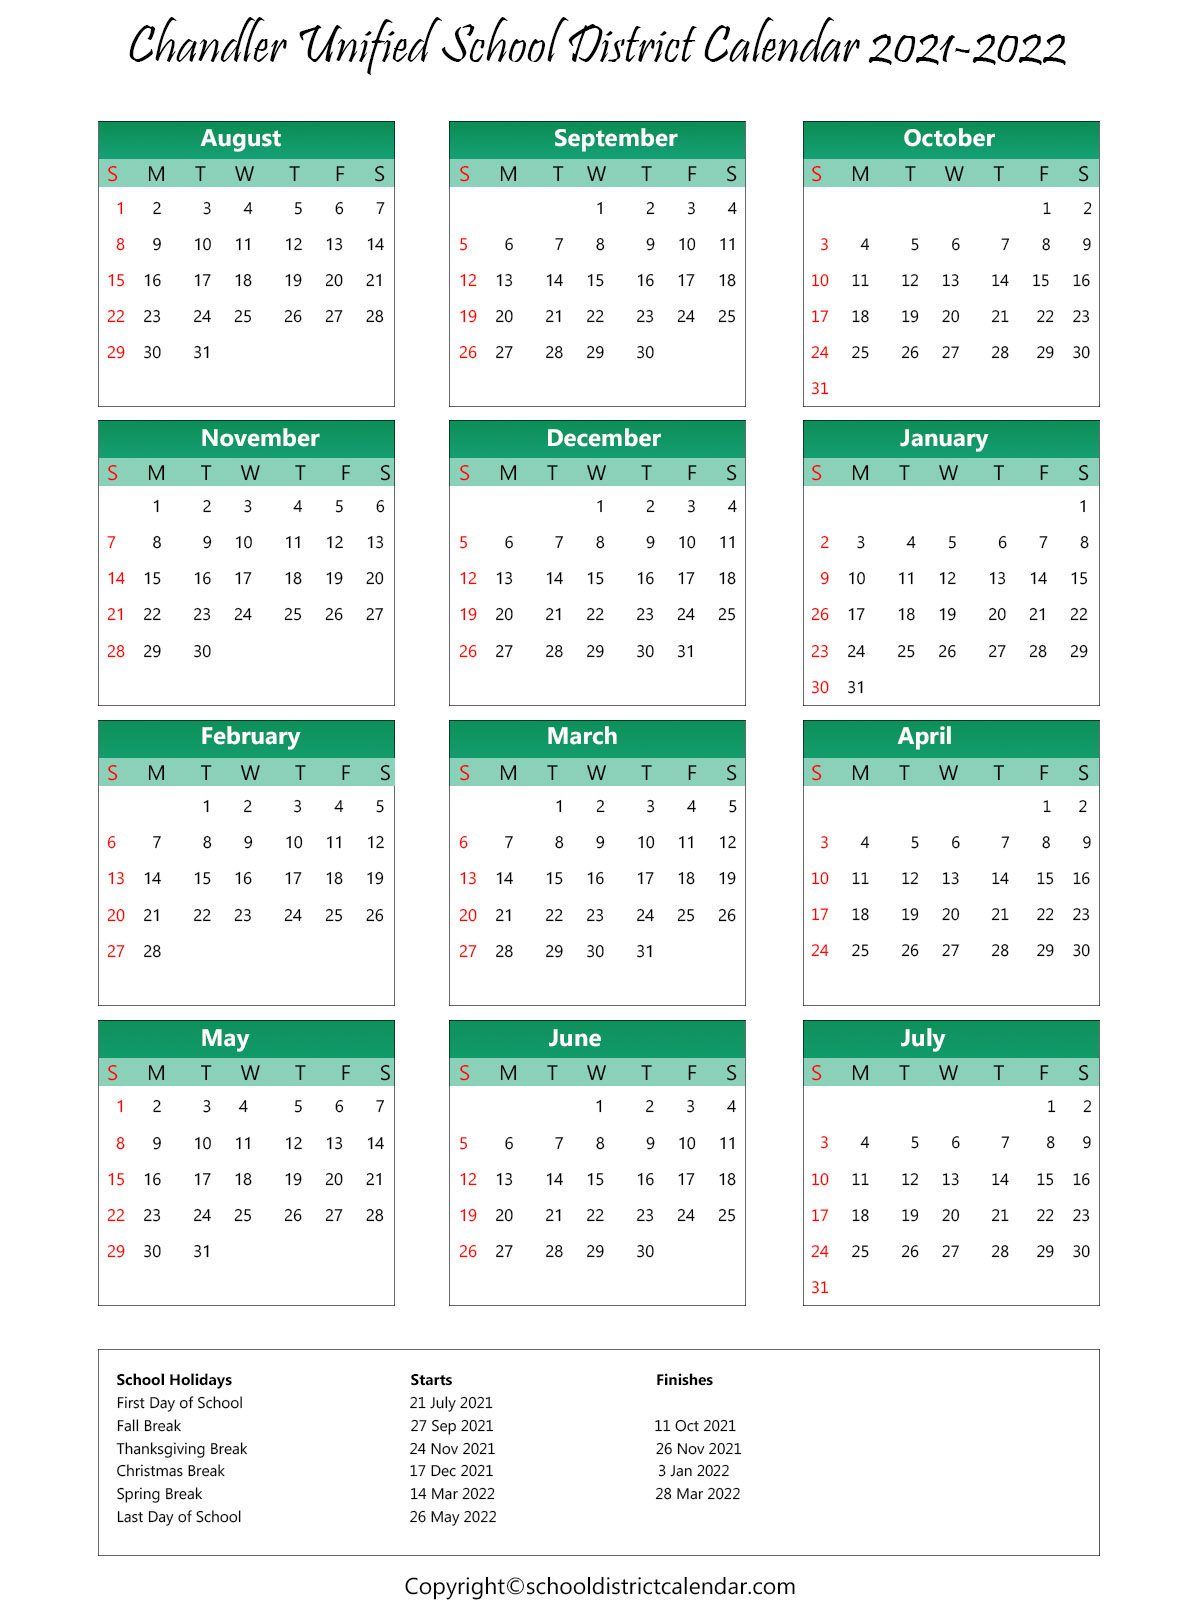 Chandler Unified School District, Arizona Calendar Holidays 2021